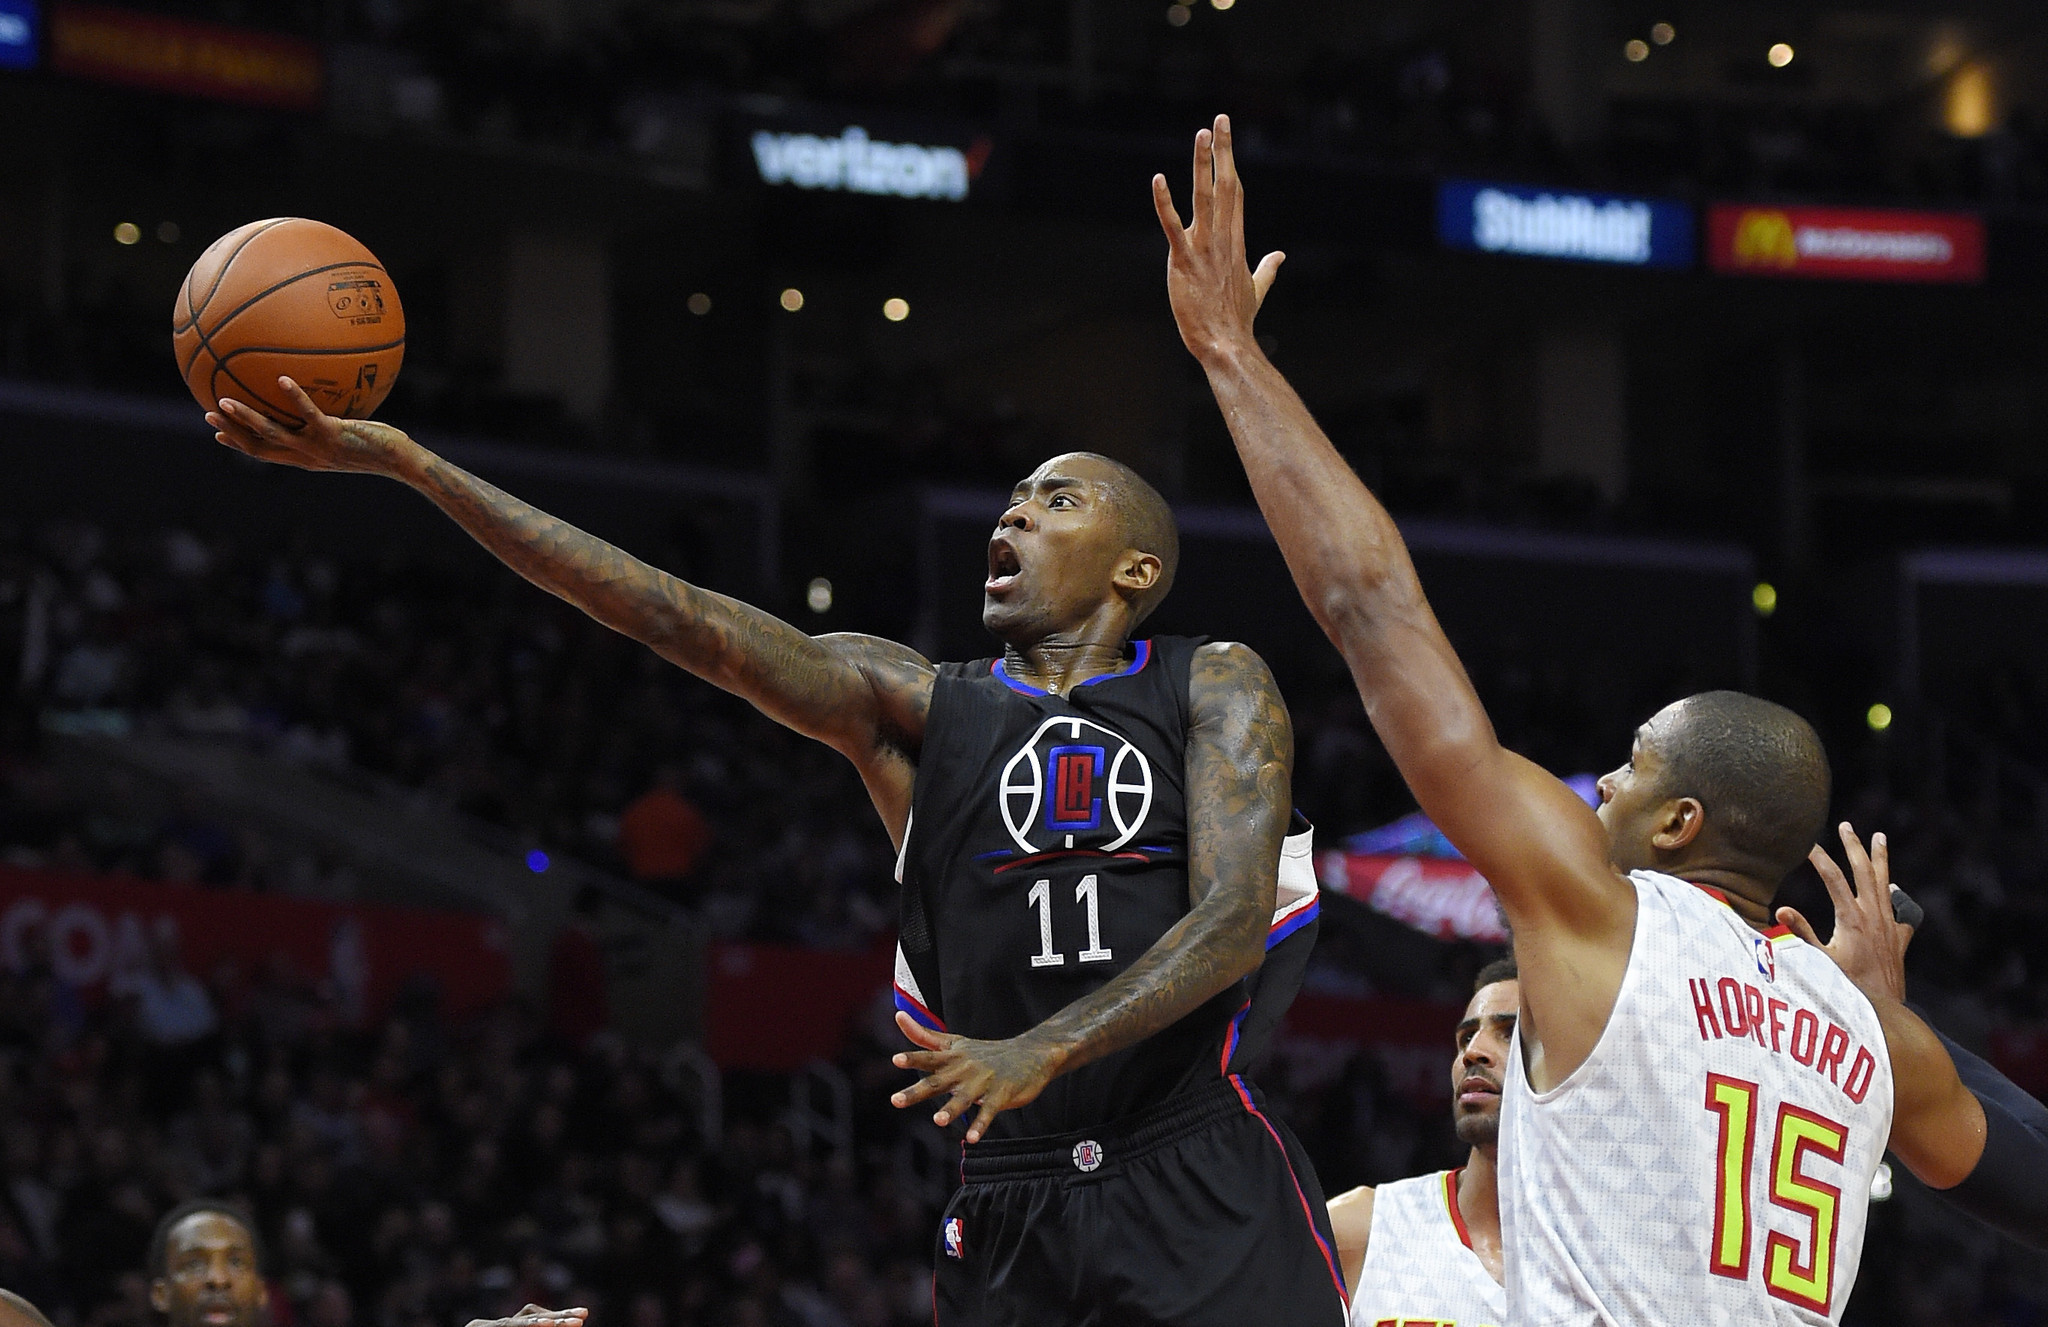 Clippers Jamal Crawford wins sixth man award for the third time